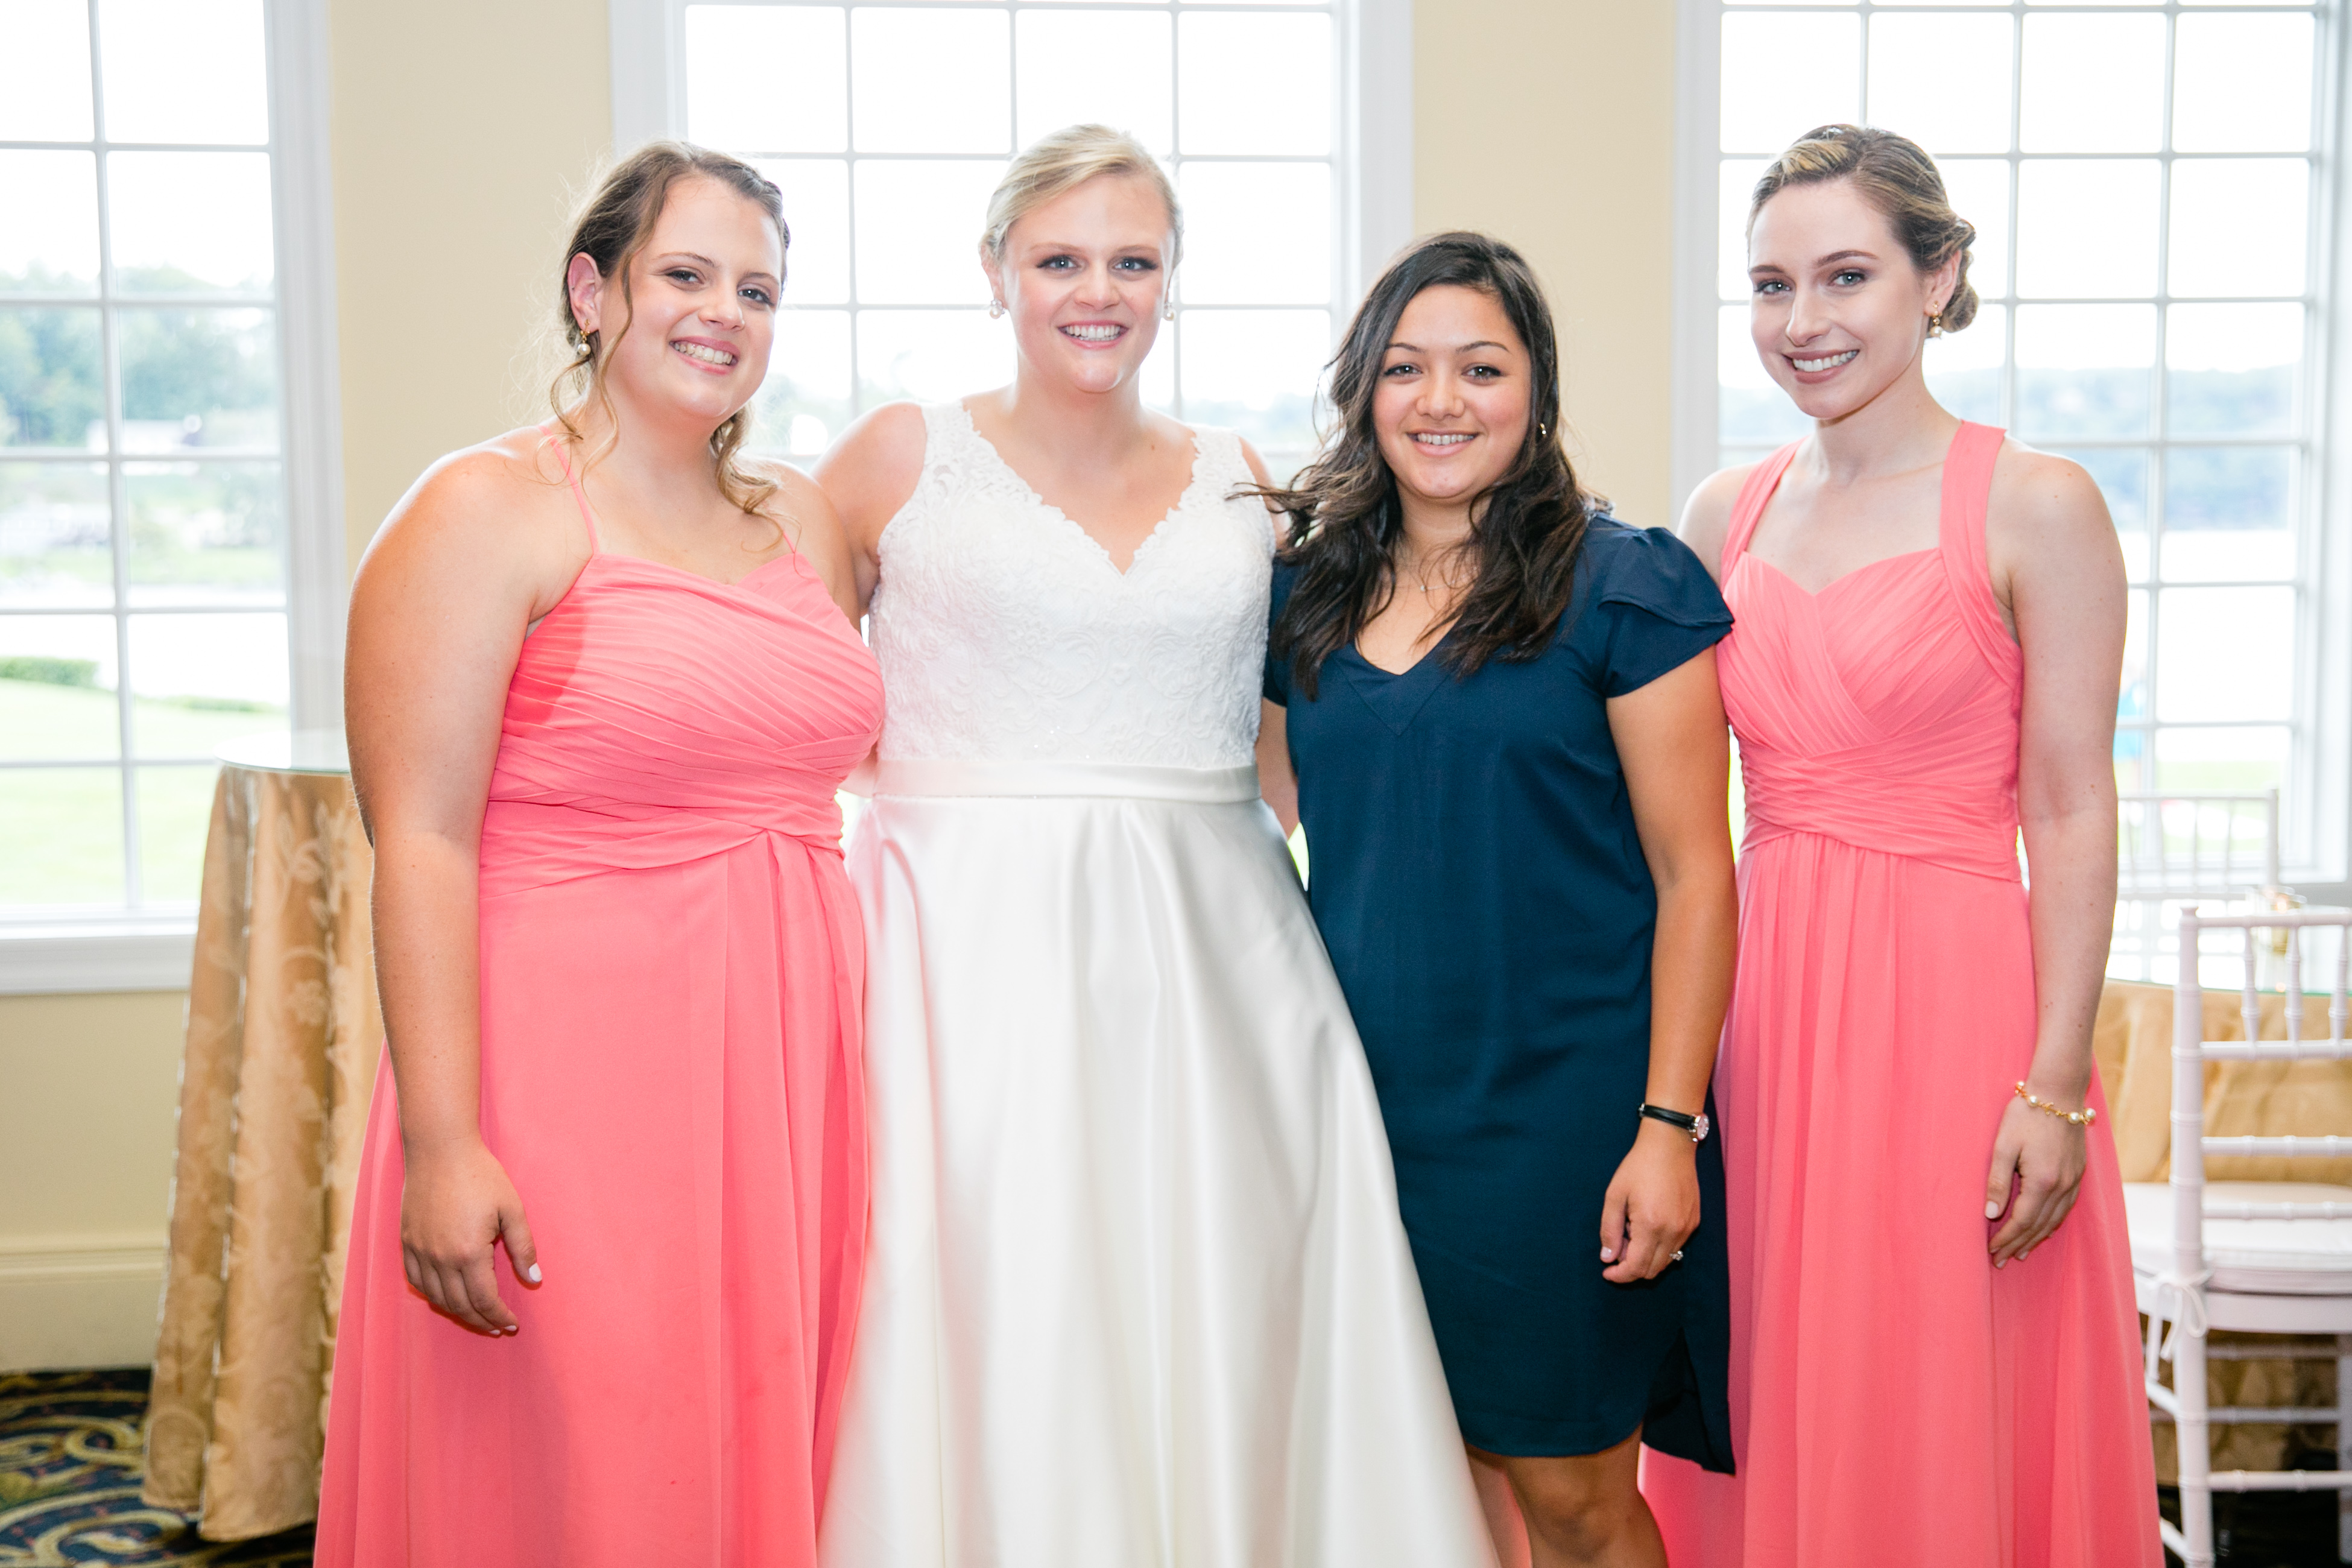 a1f6c55ee728 Hannah Tanguay married Sean Dunphy on Sept. 8 in Woodbury, Connecticut.  Several of Hannah's WMA friends were present at the wedding, including  (left to ...